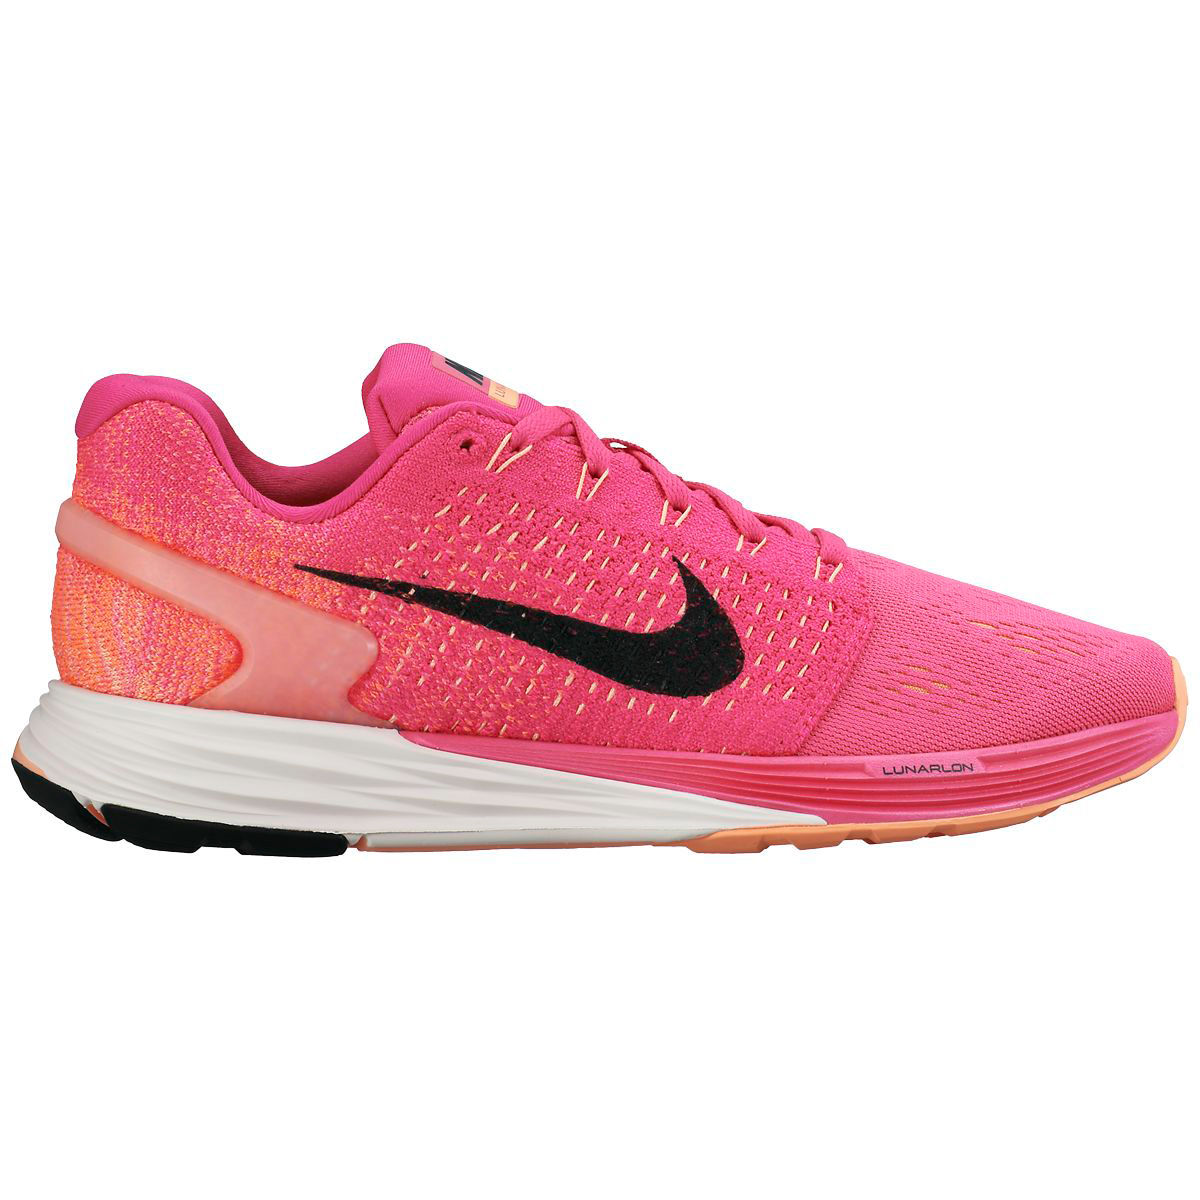 7 s framework of nike Find great deals on ebay for mens nike shoes 75 and adidas shoes mens 75 shop with confidence.